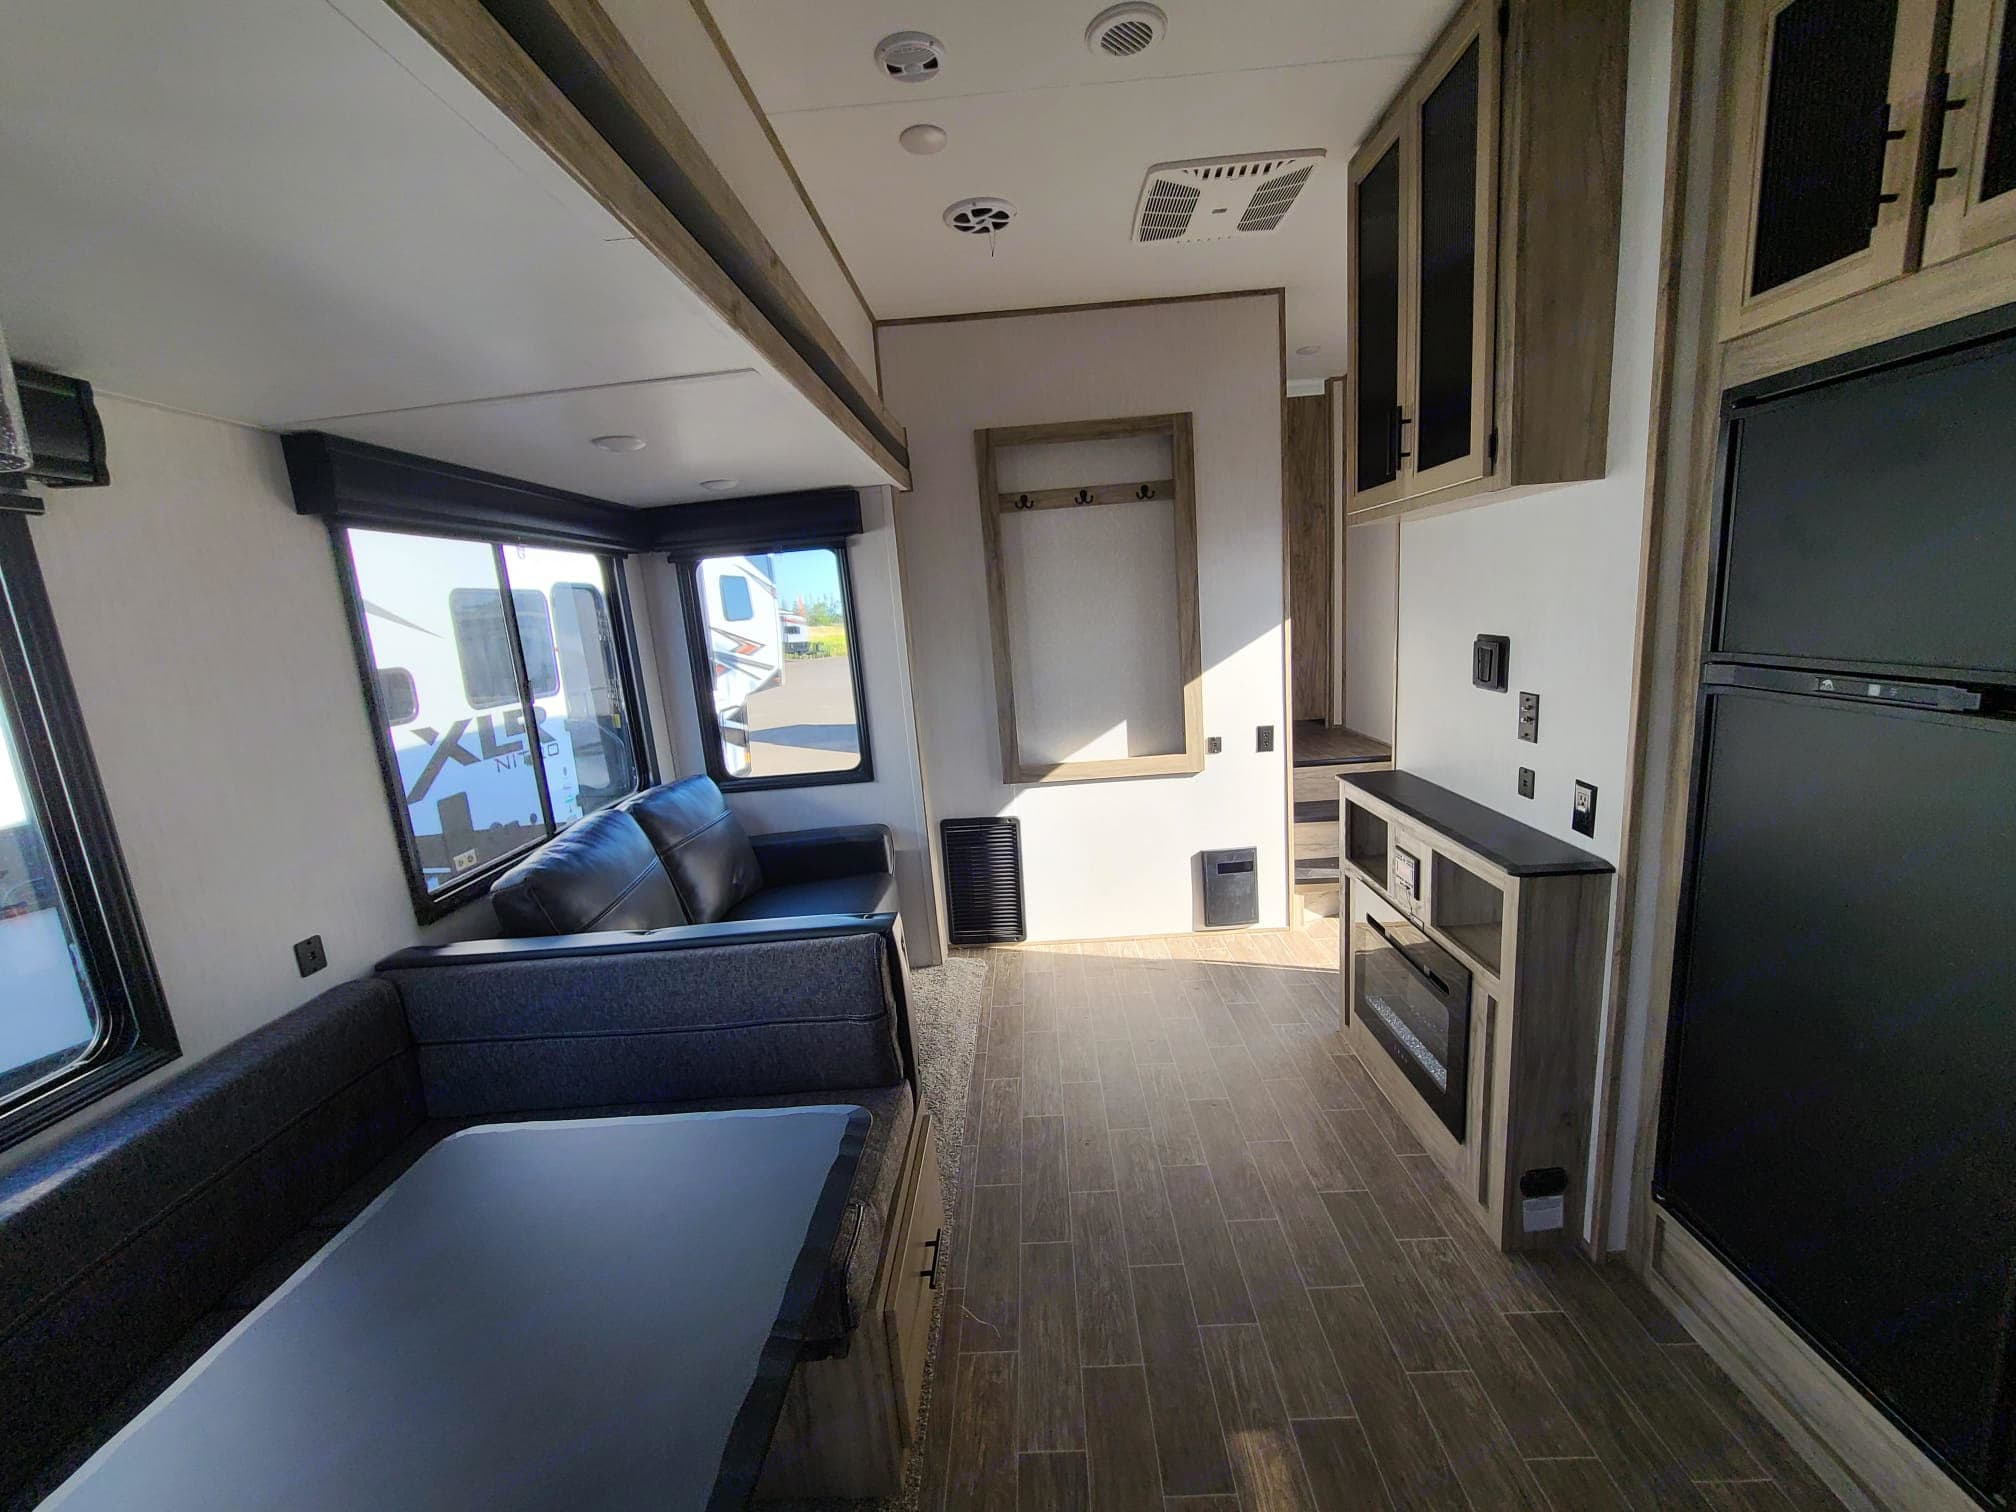 Dinette that converts to a bed, Couch with pullout bed, Electric Fireplace with TV Hookup, Stereo with bluetooth capability and zone control. Forest River Cherokee 2021